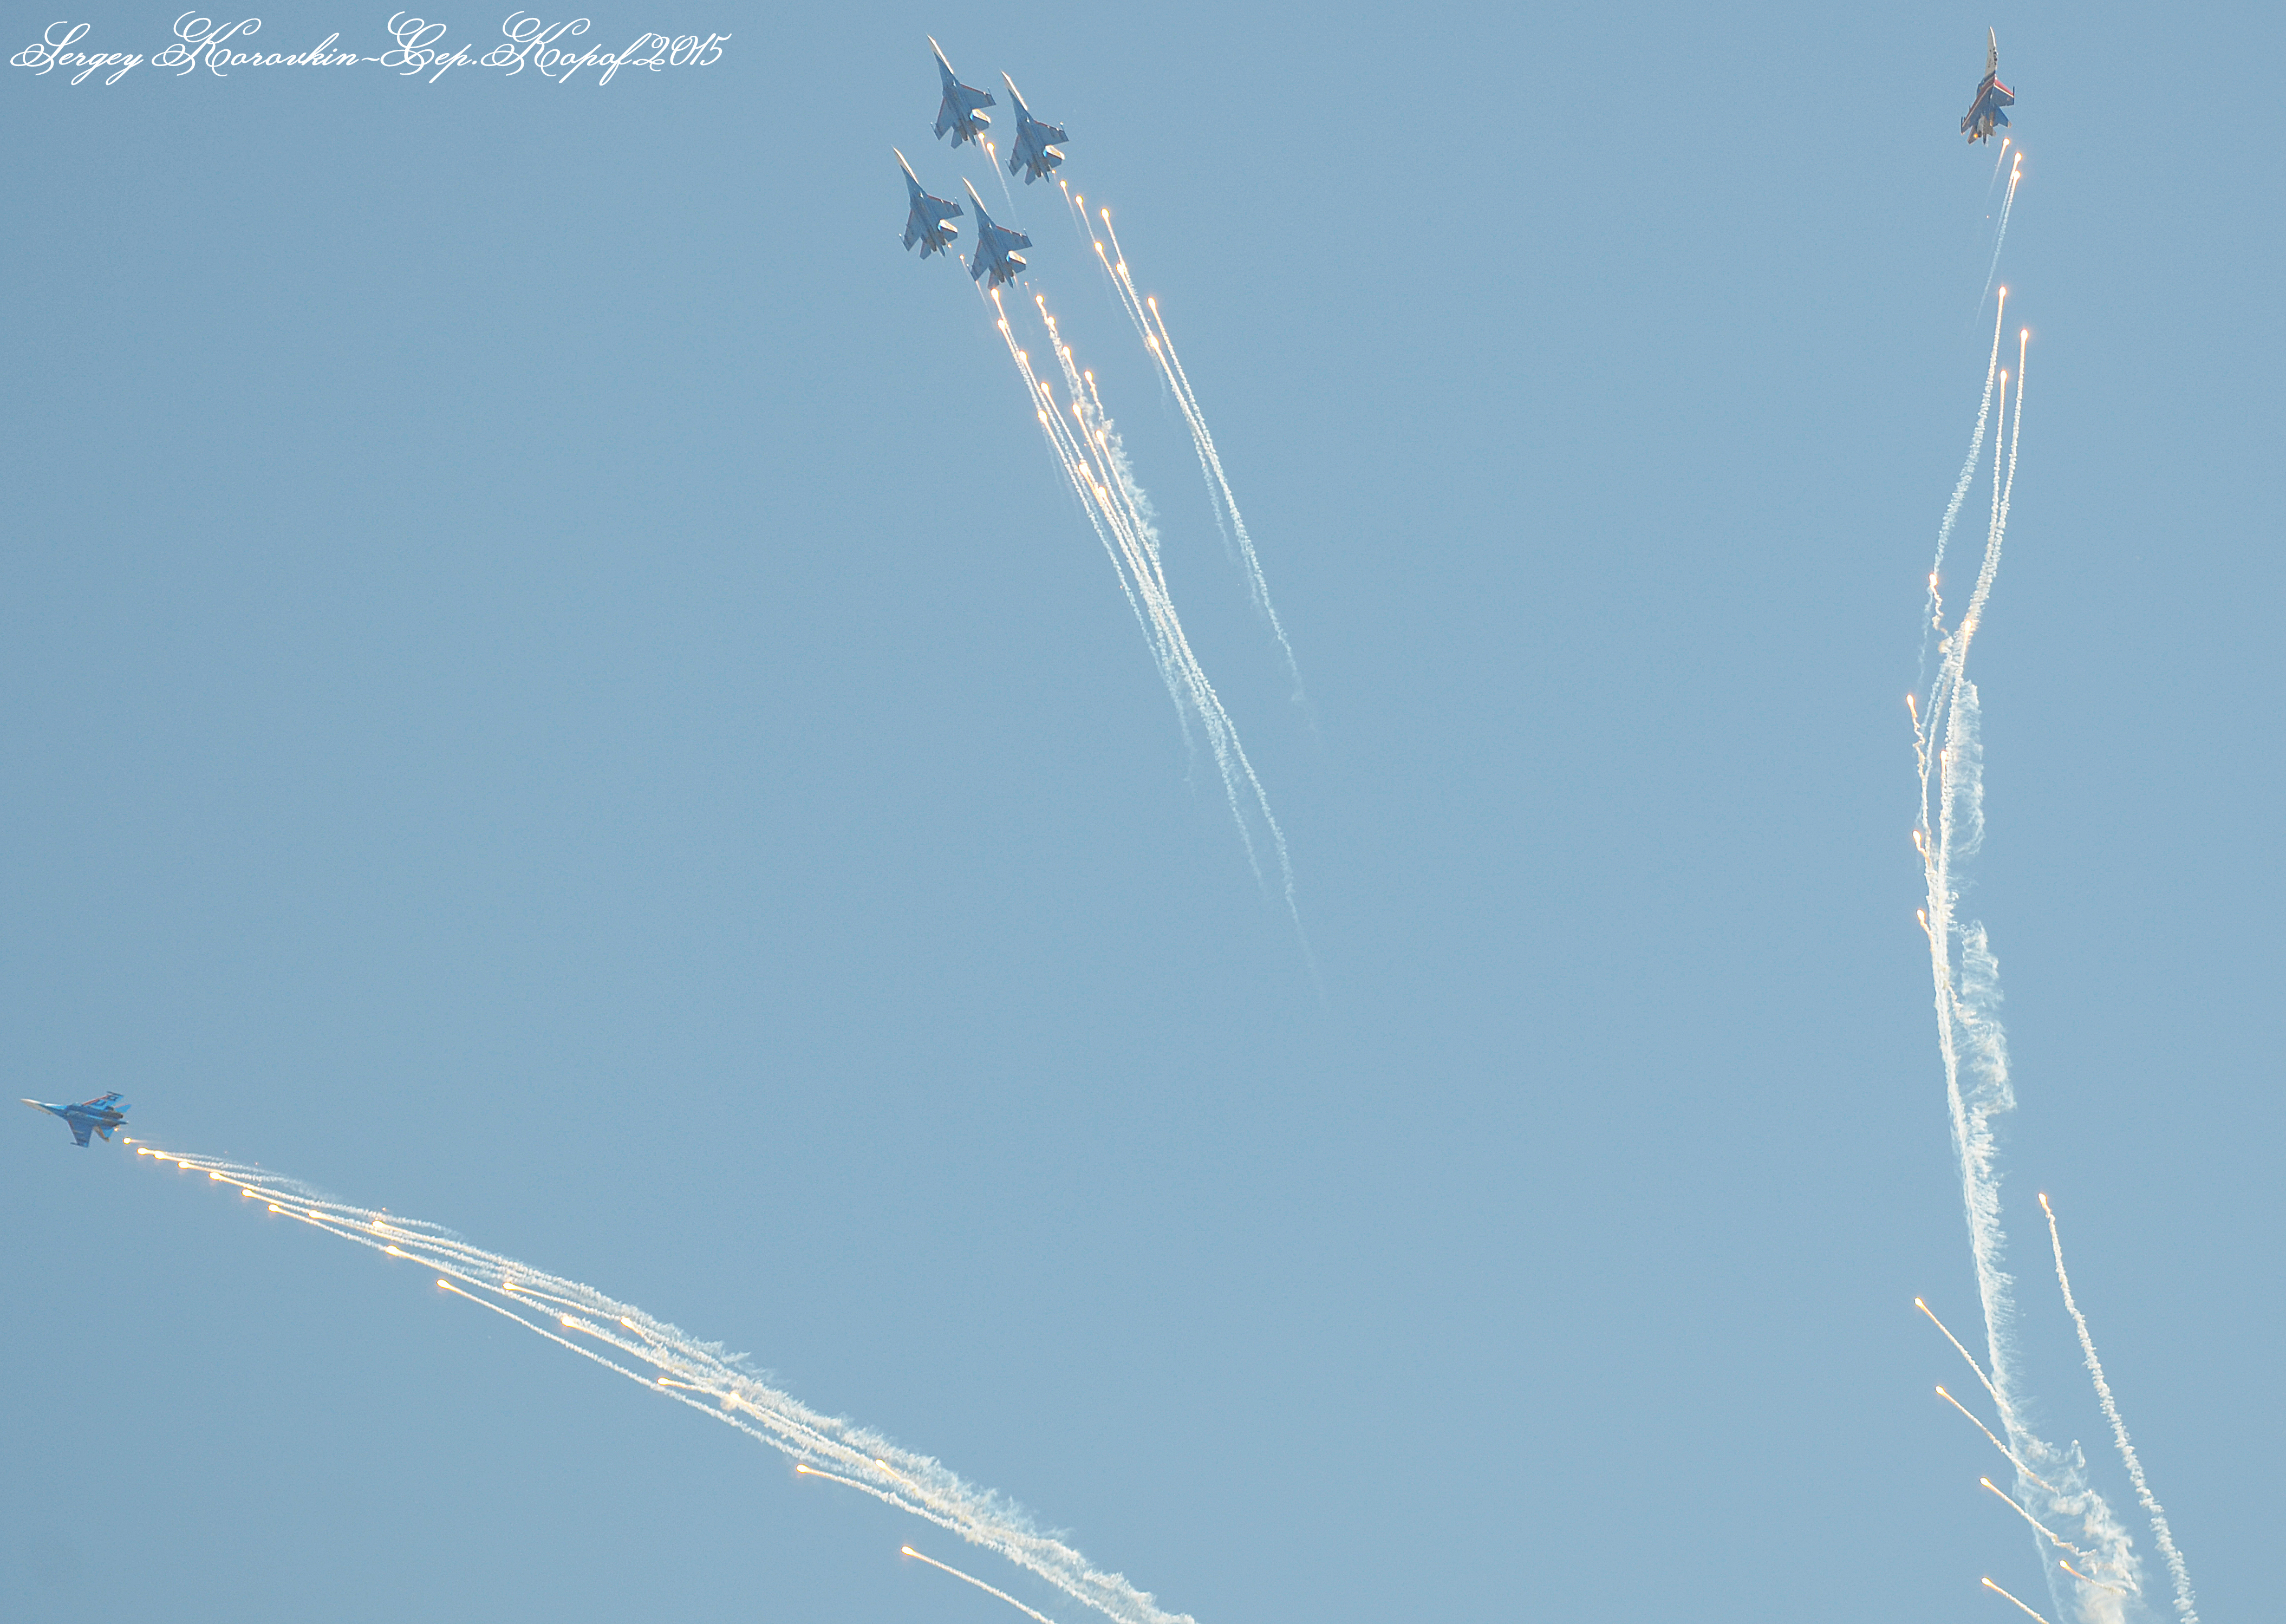 MAKS-2015 Air Show: Photos and Discussion - Page 2 0_17b400_e340293a_orig